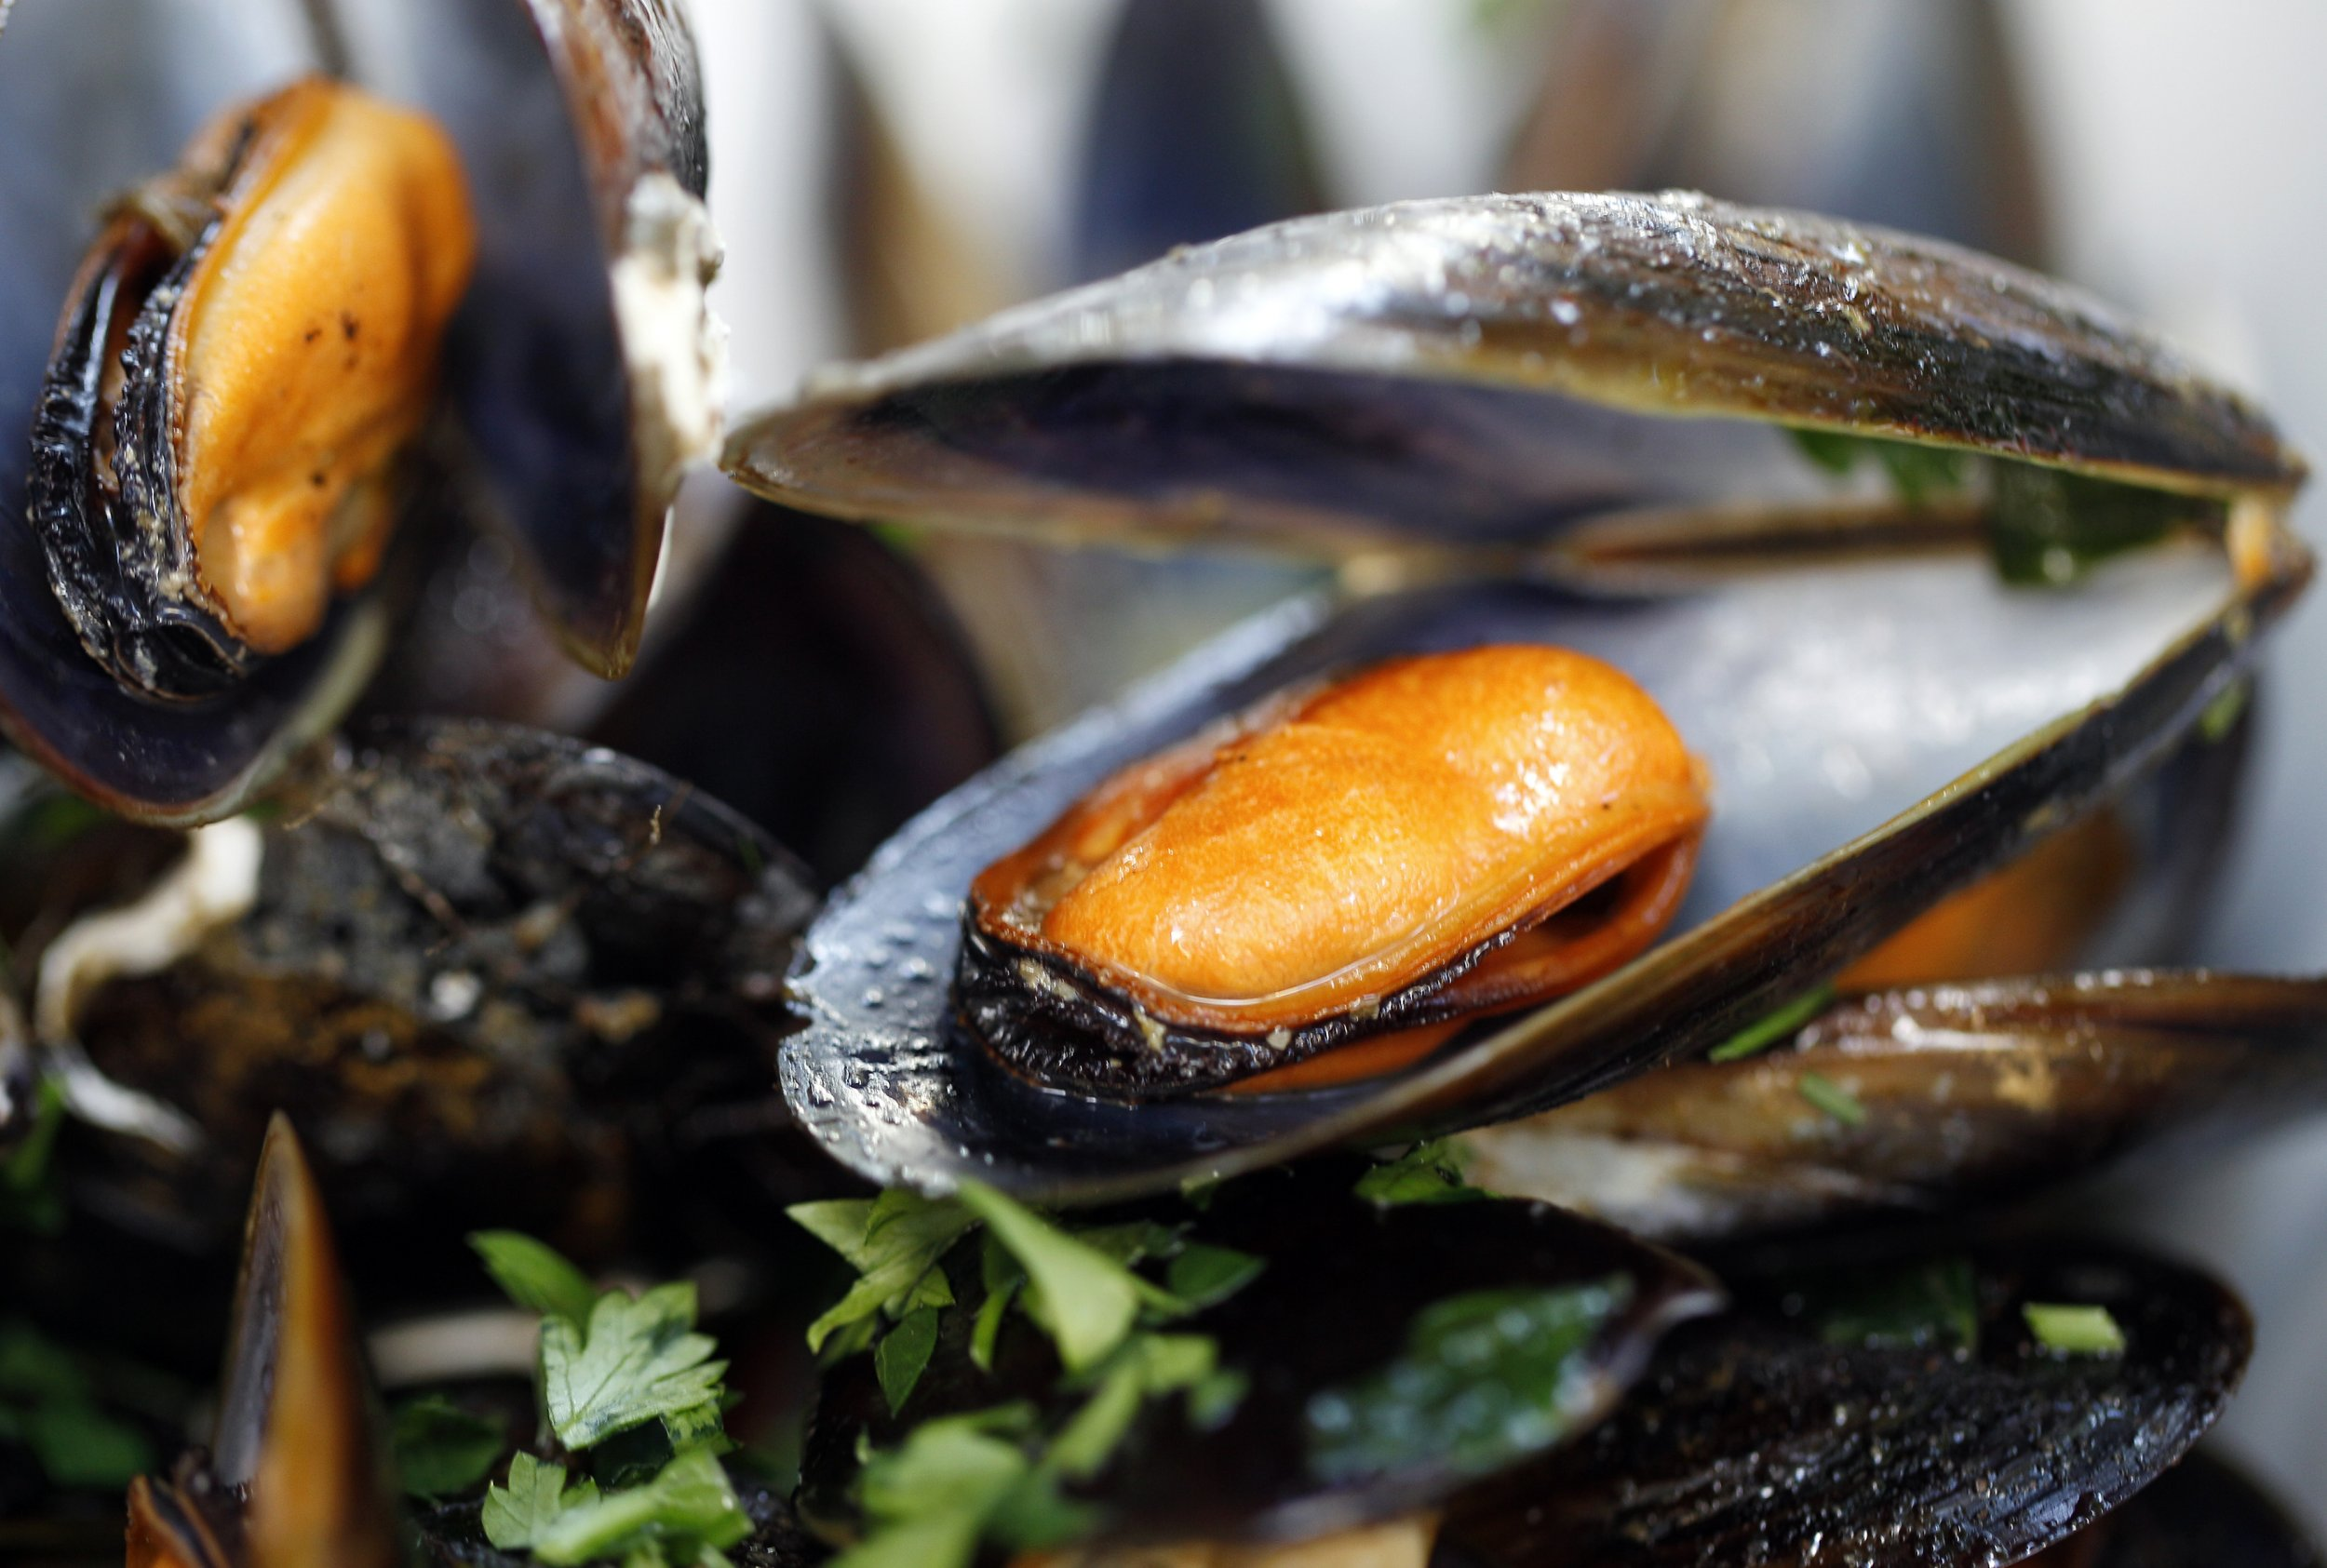 pictures Shellfish Toxin Spreading to Eastern U.S., Report Says